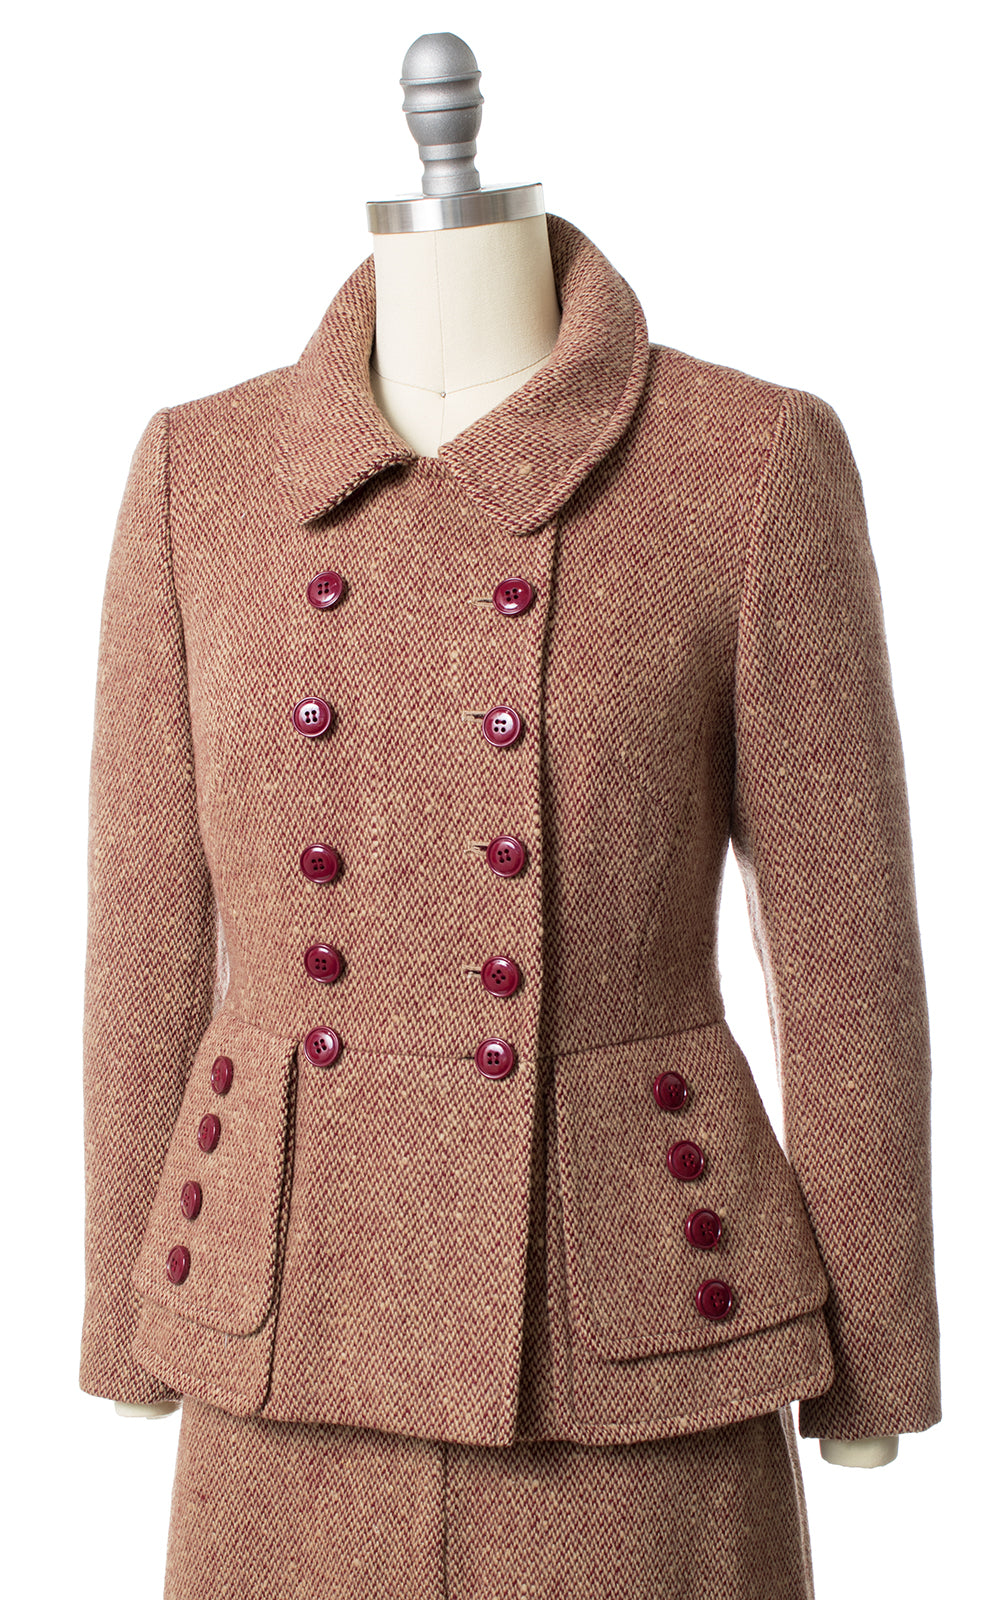 1970s does 1940s Burgundy Wool Blazer and Skirt Suit